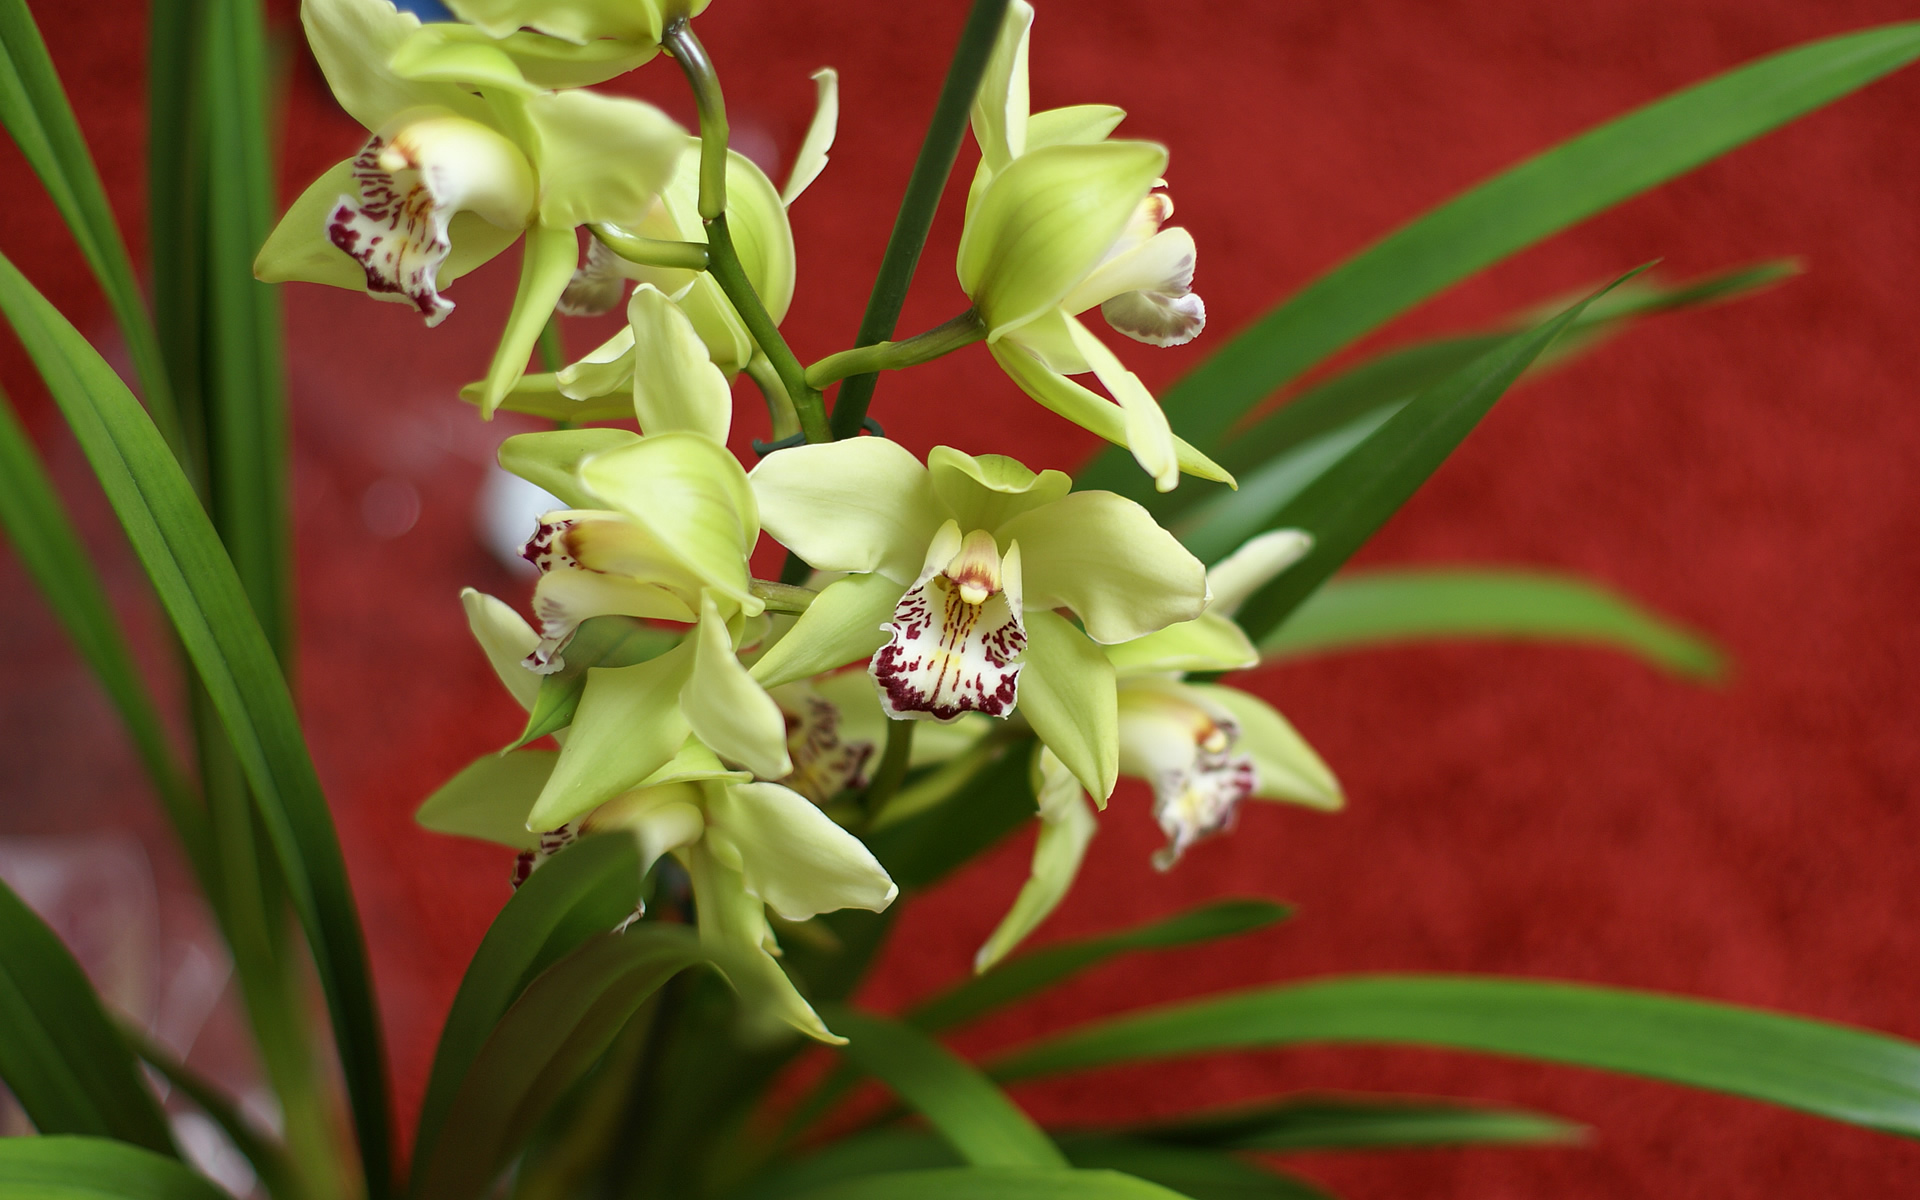 Green Yellow Cymbidium orchid